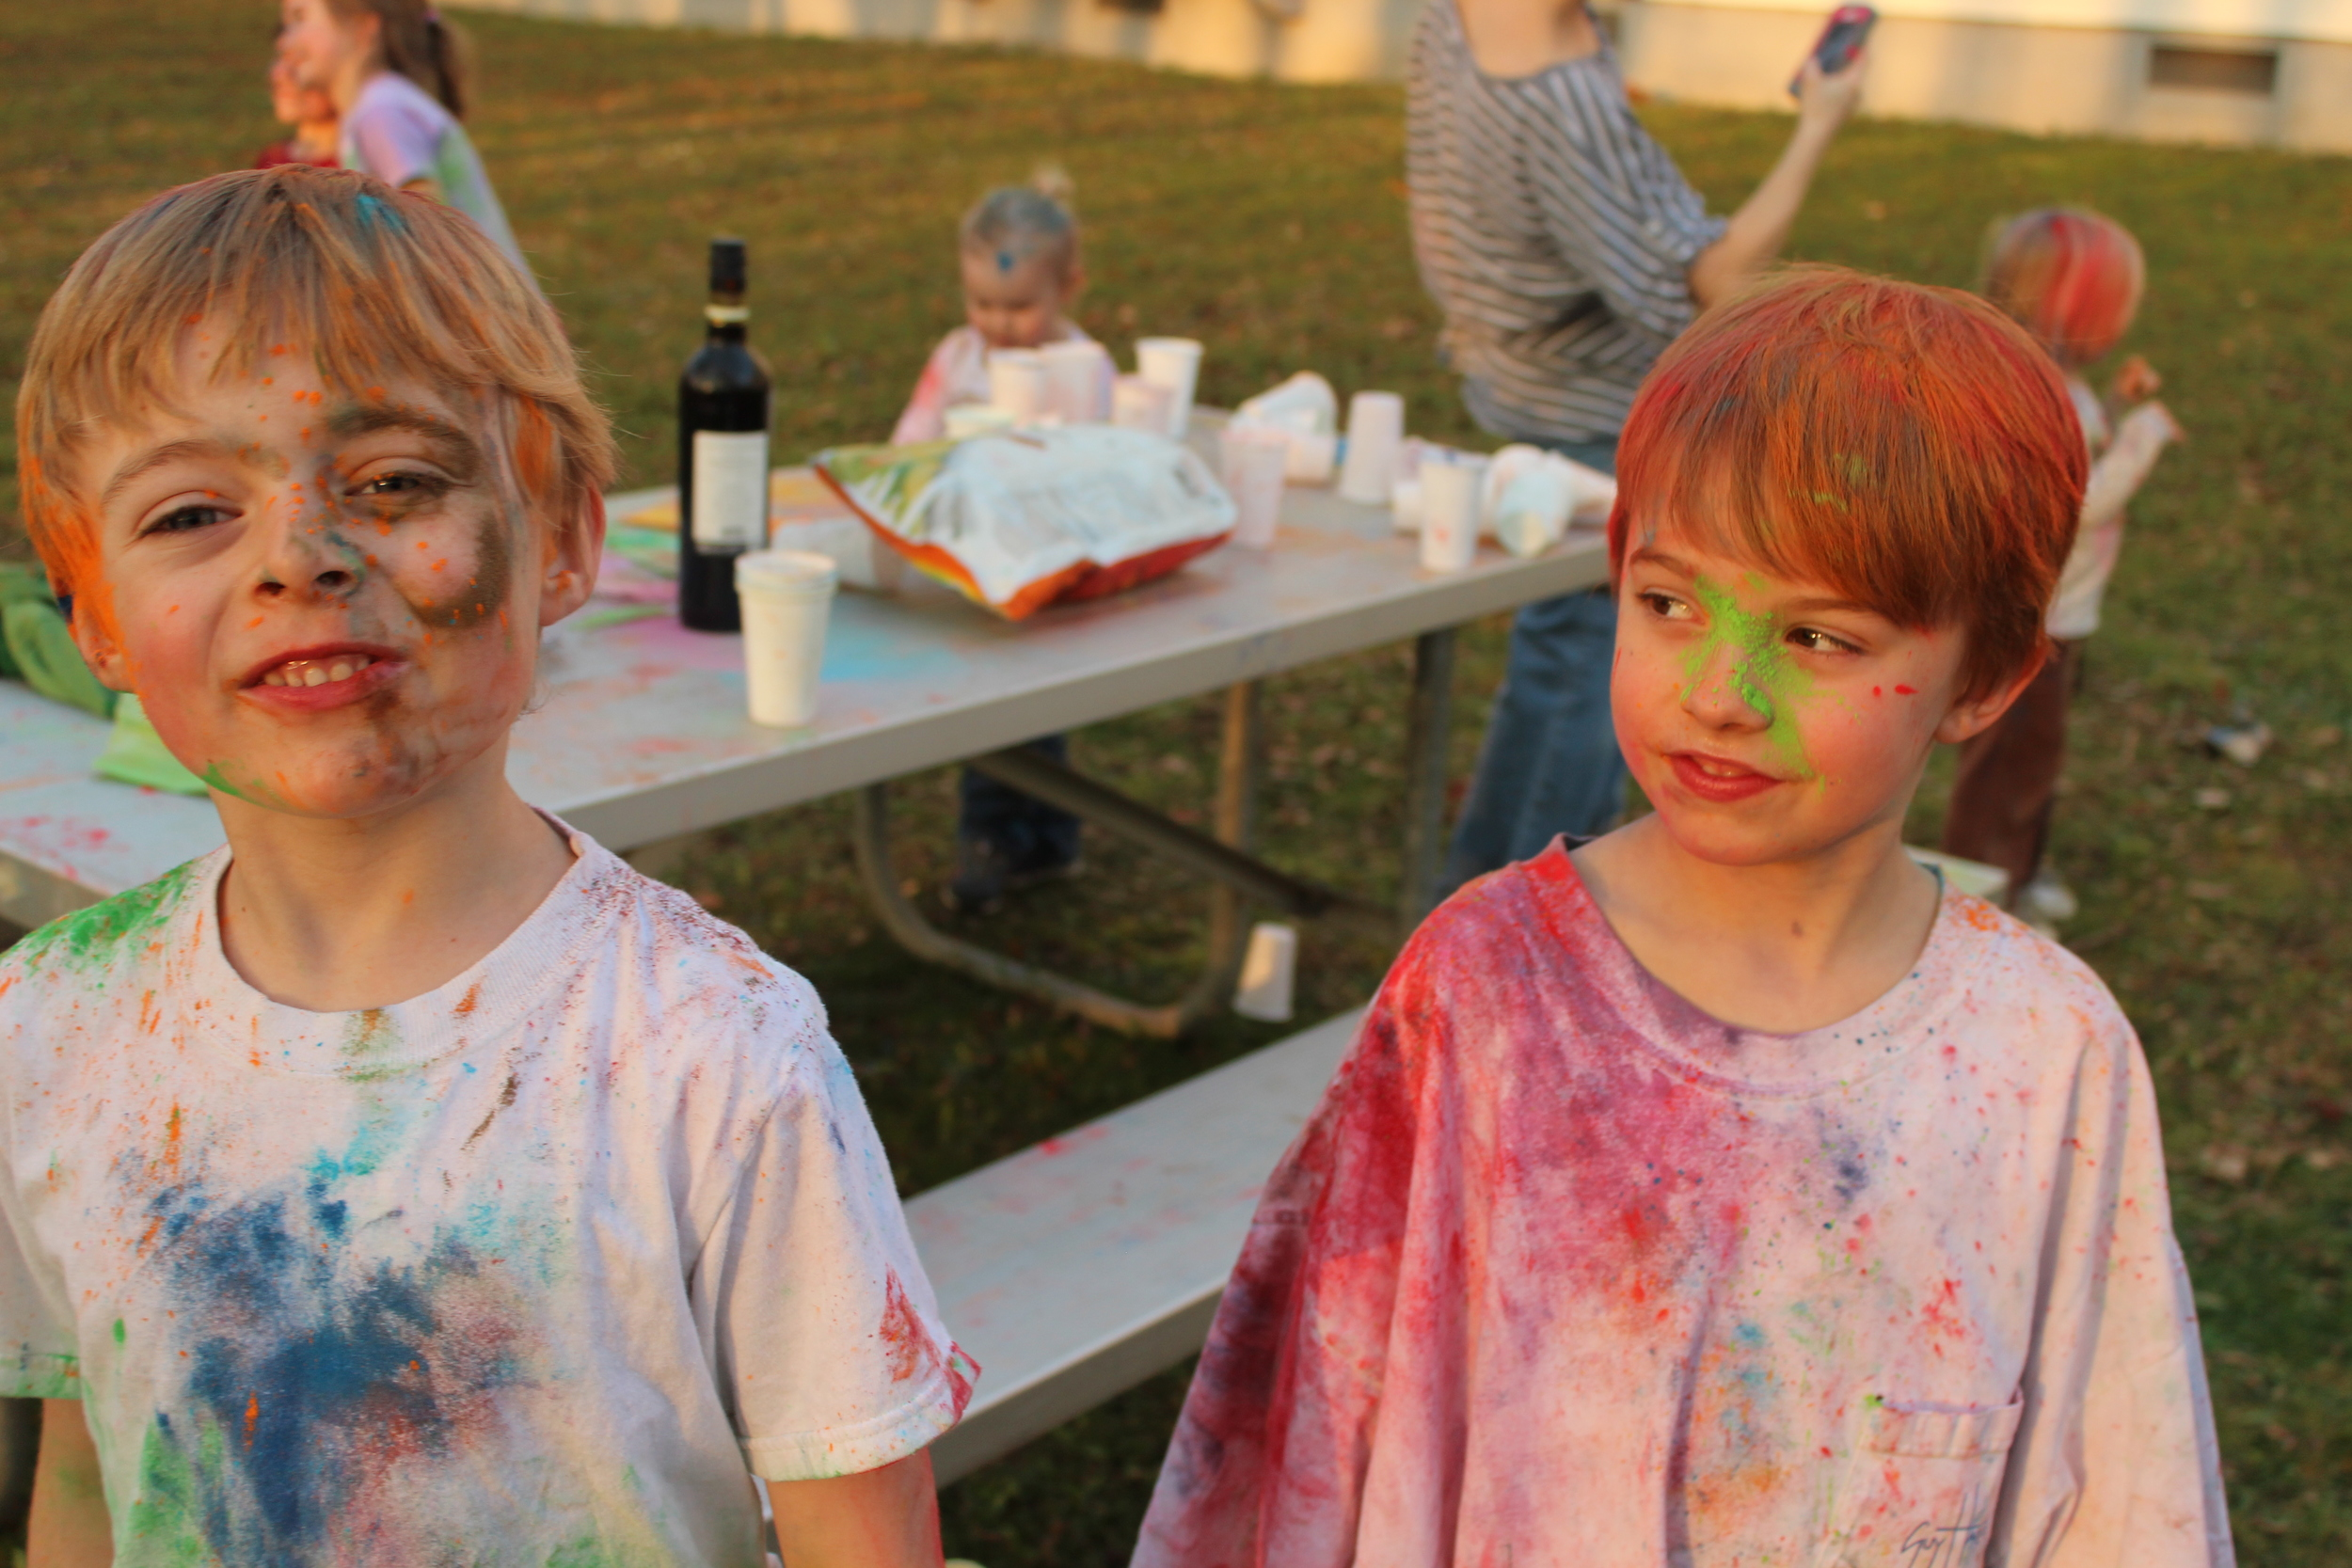 No blonde hair was harmed during this paint fight!